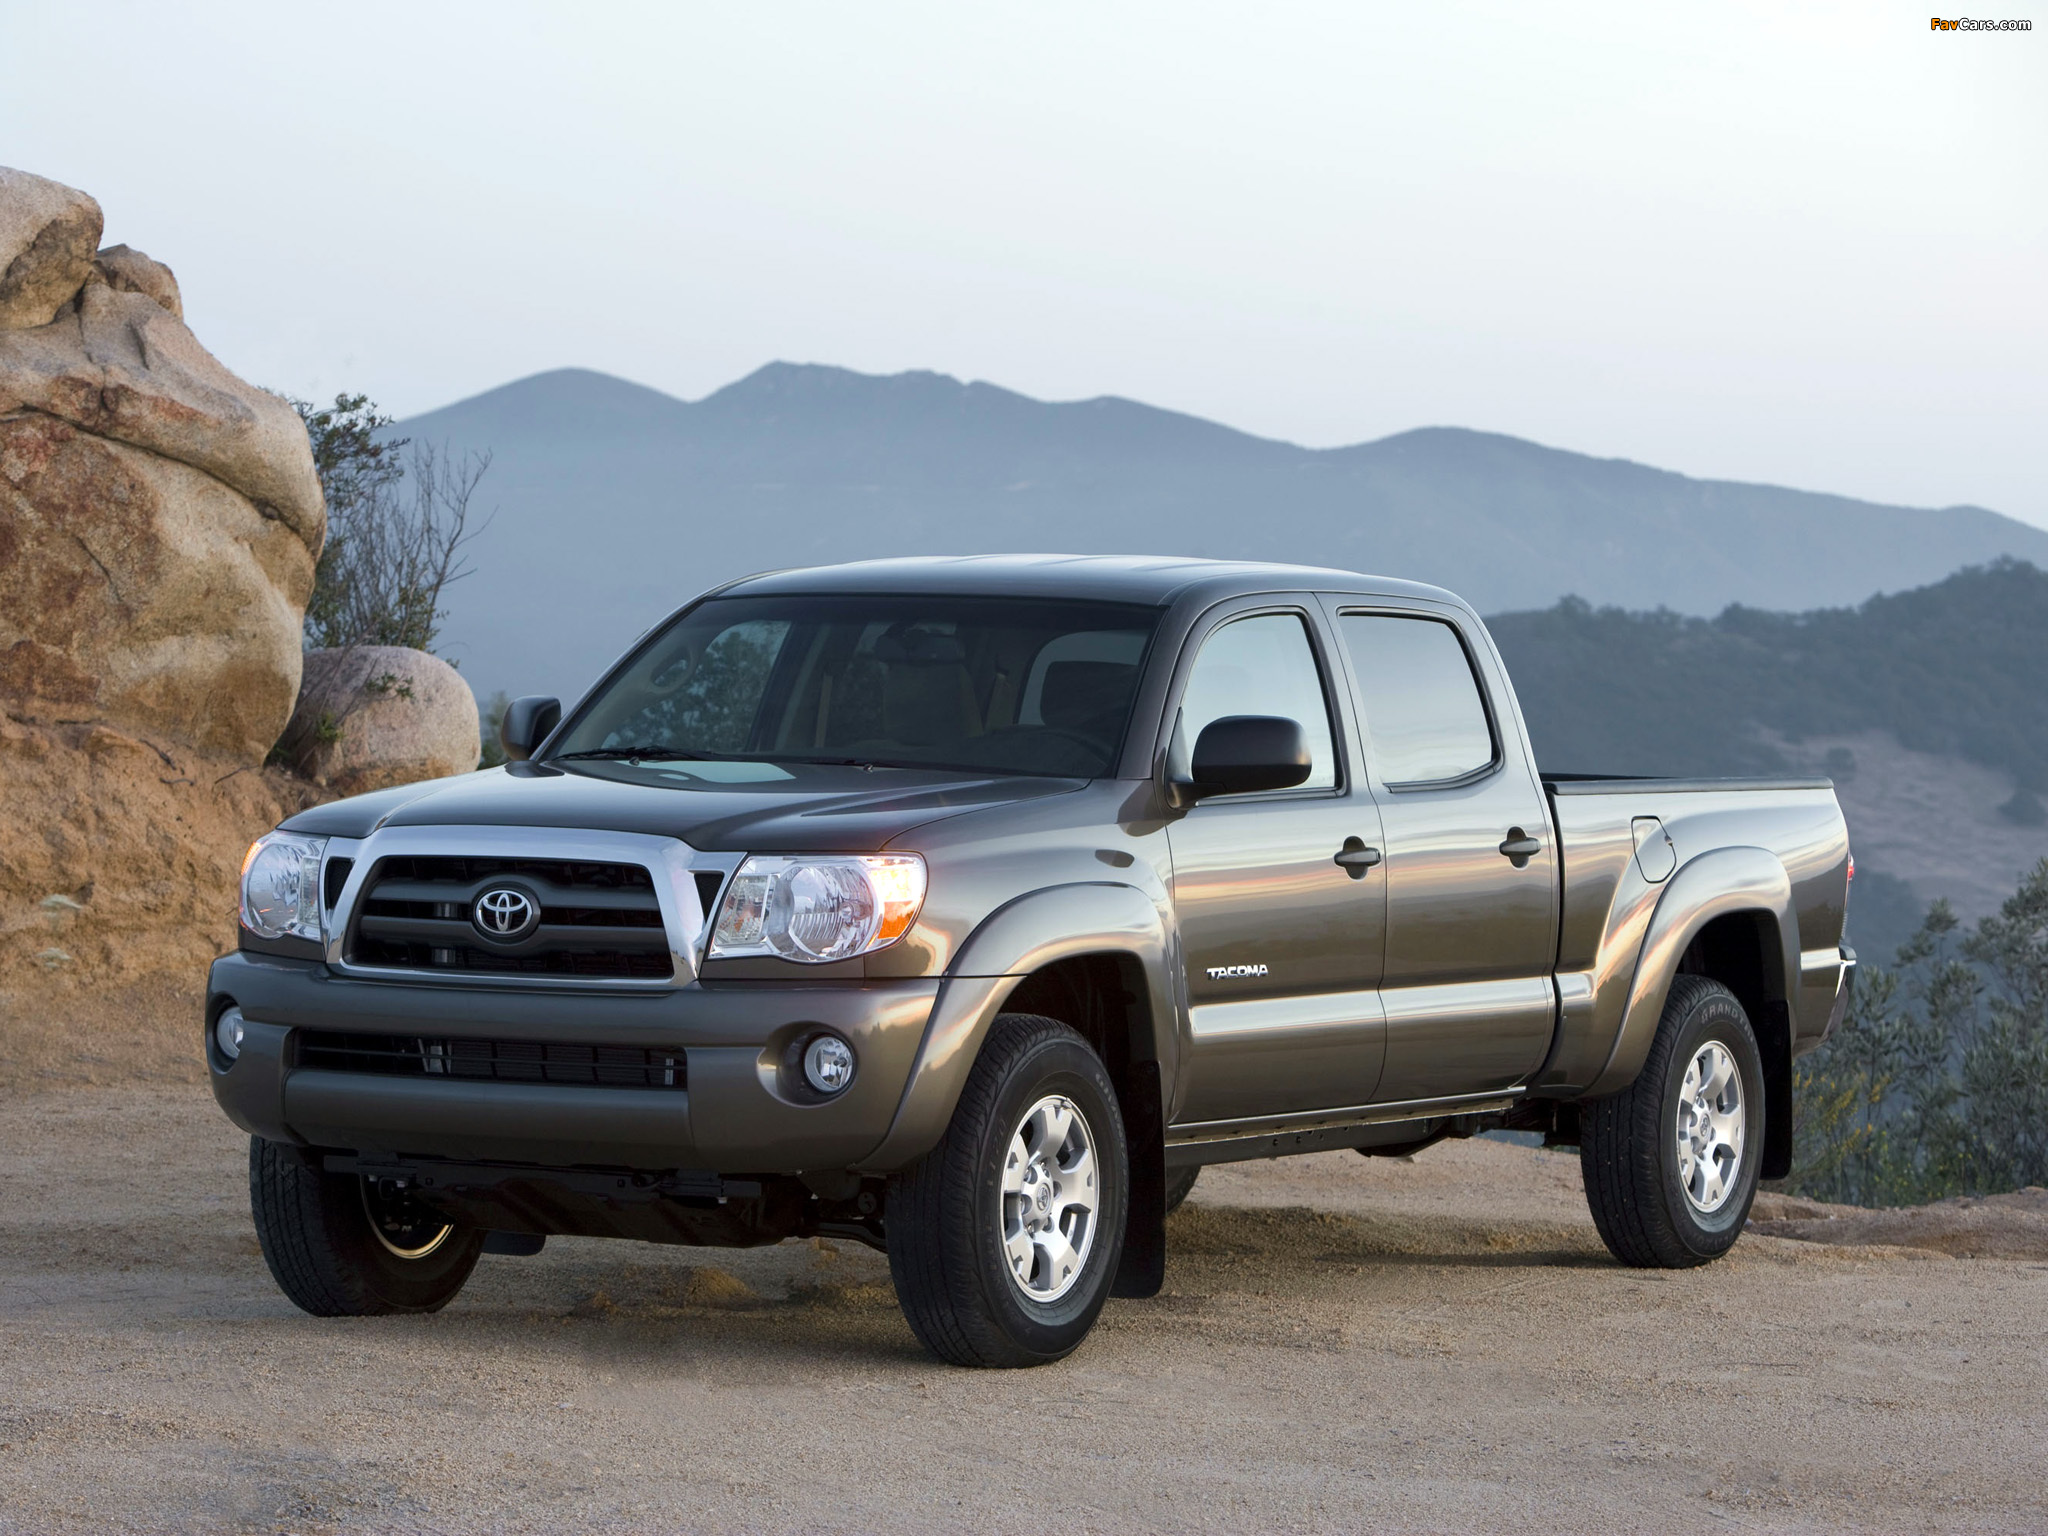 Toyota Tacoma Double Cab 2005 12 Wallpapers 2048x1536